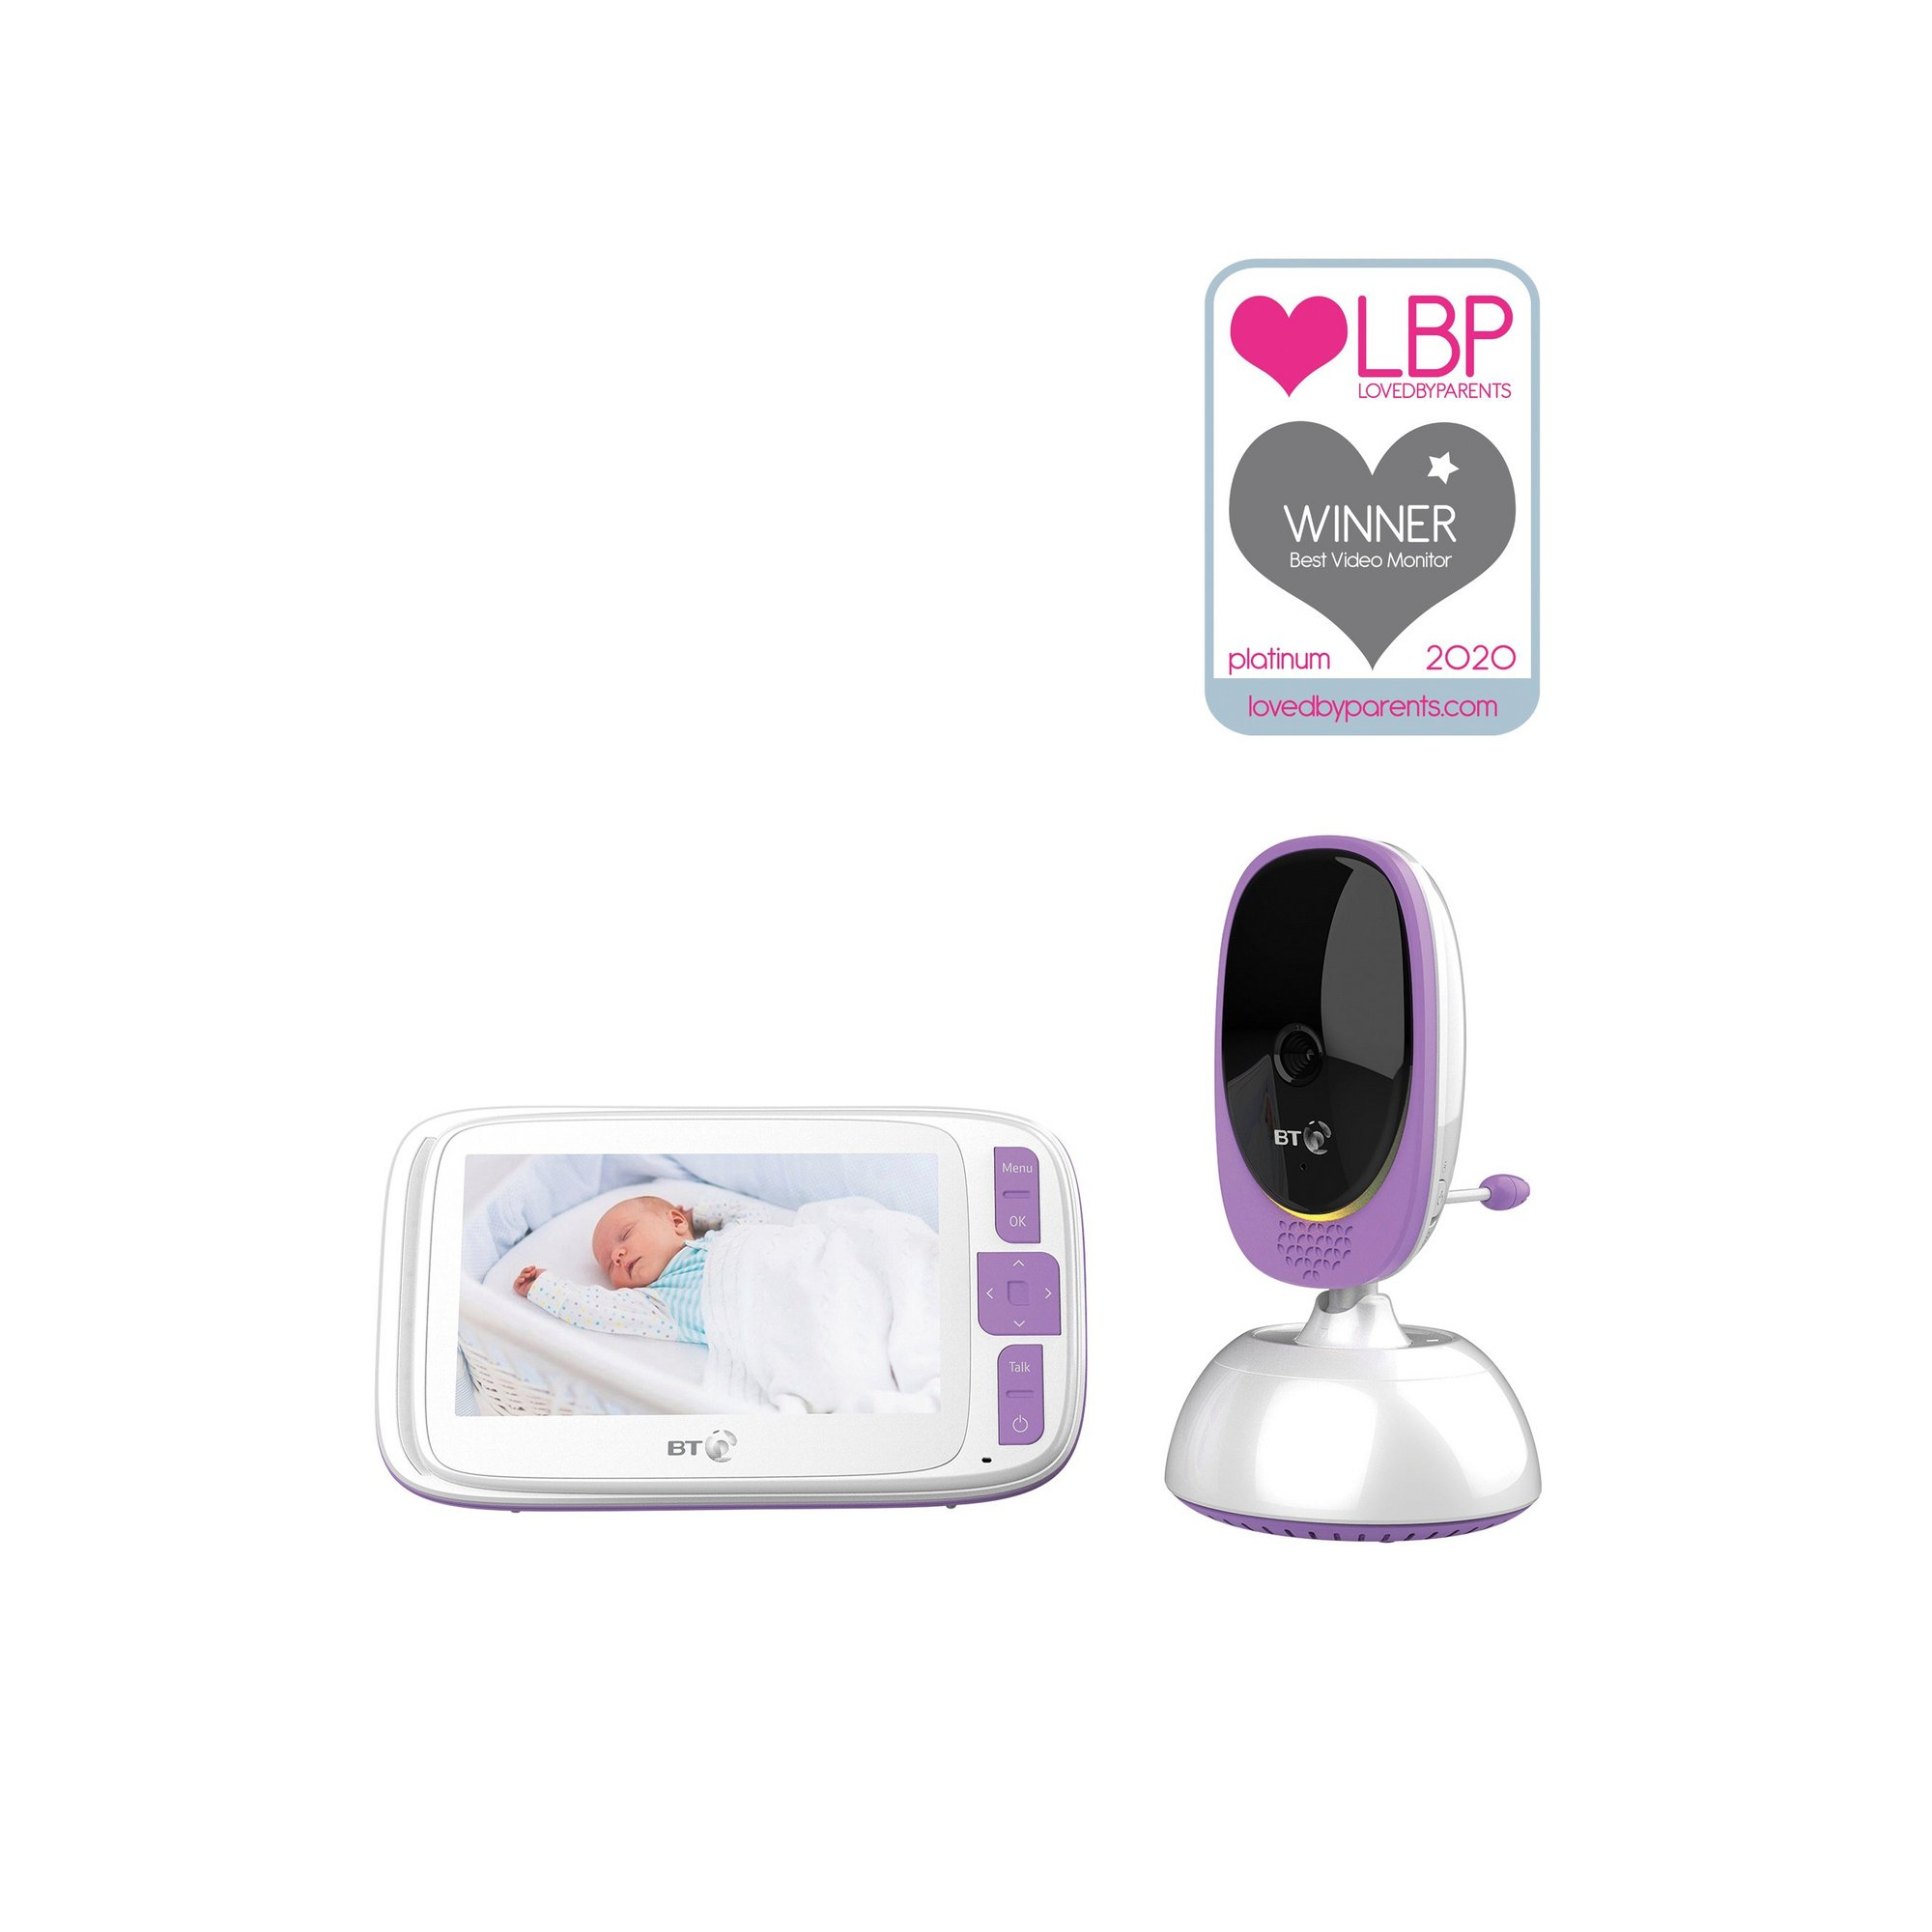 Image of BT Smart Video Baby Monitor 5 Inch Screen